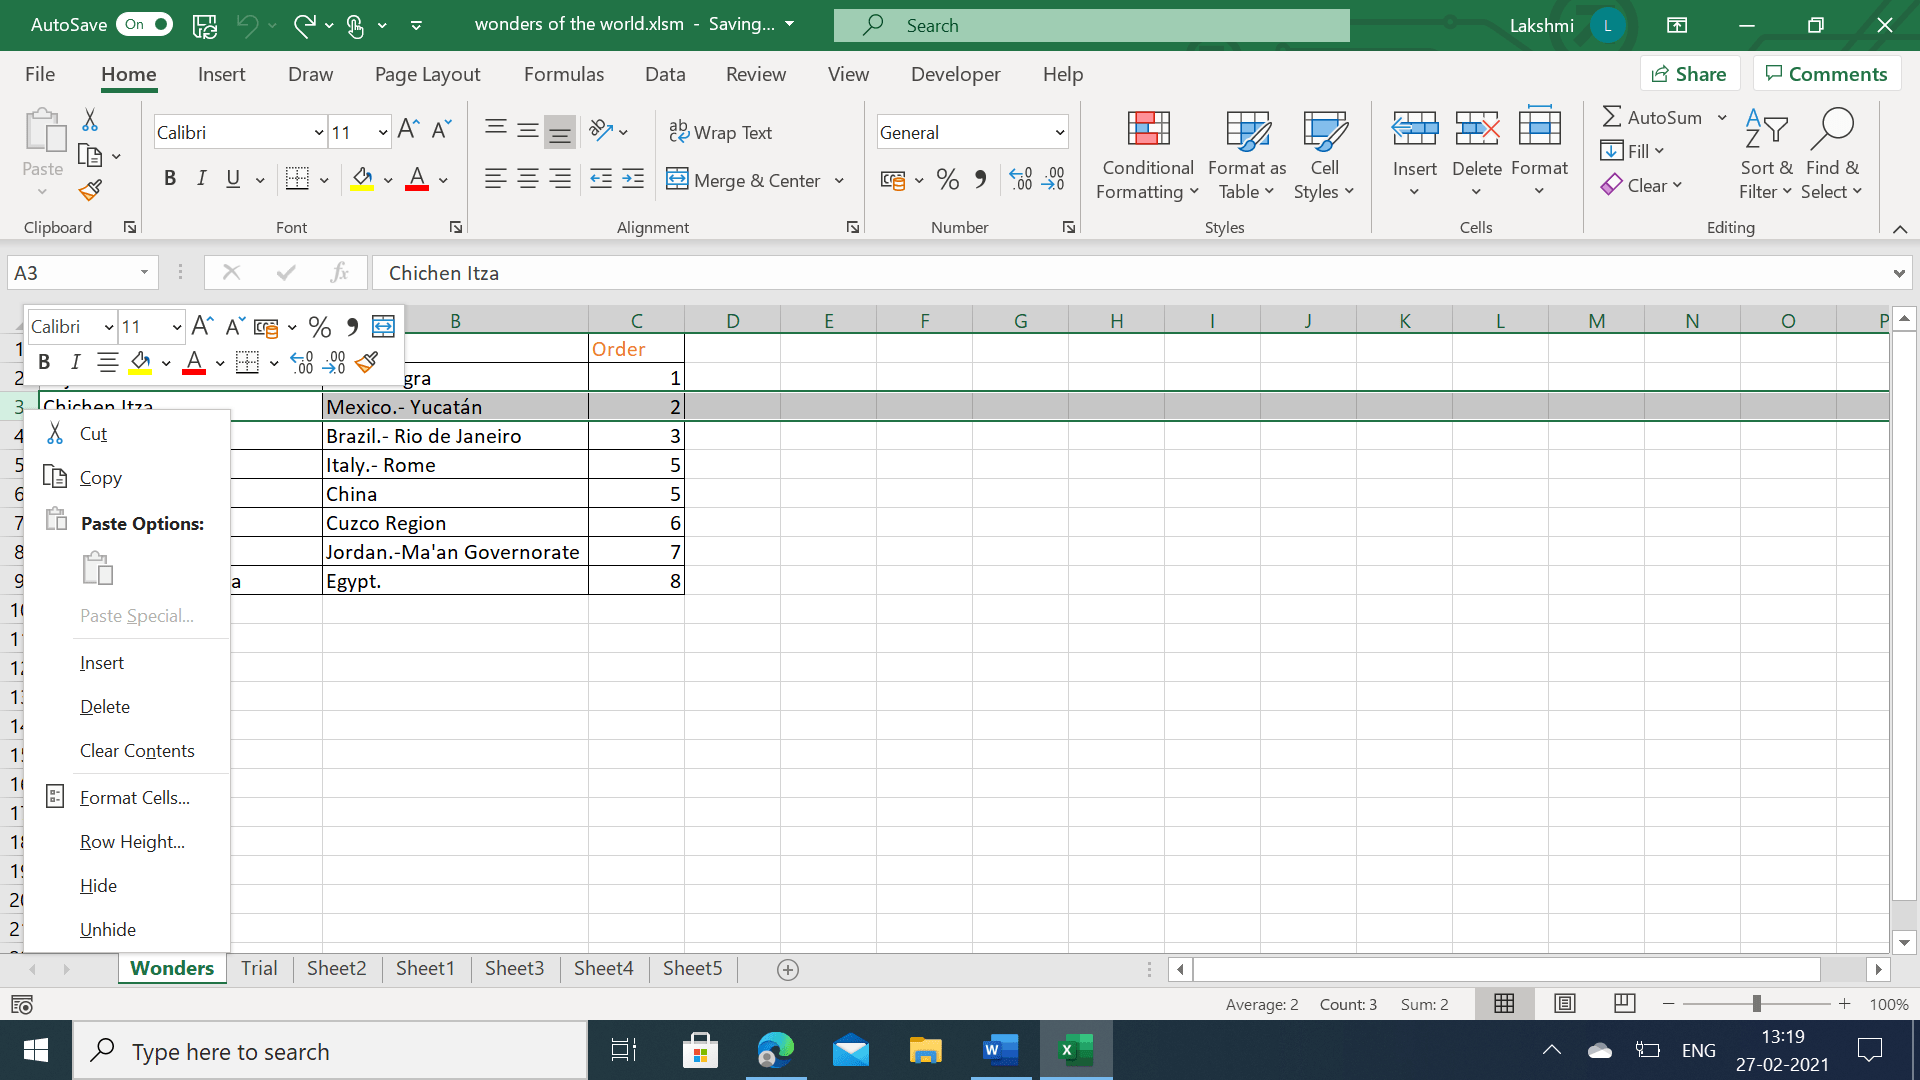 Manually delete row in Excel